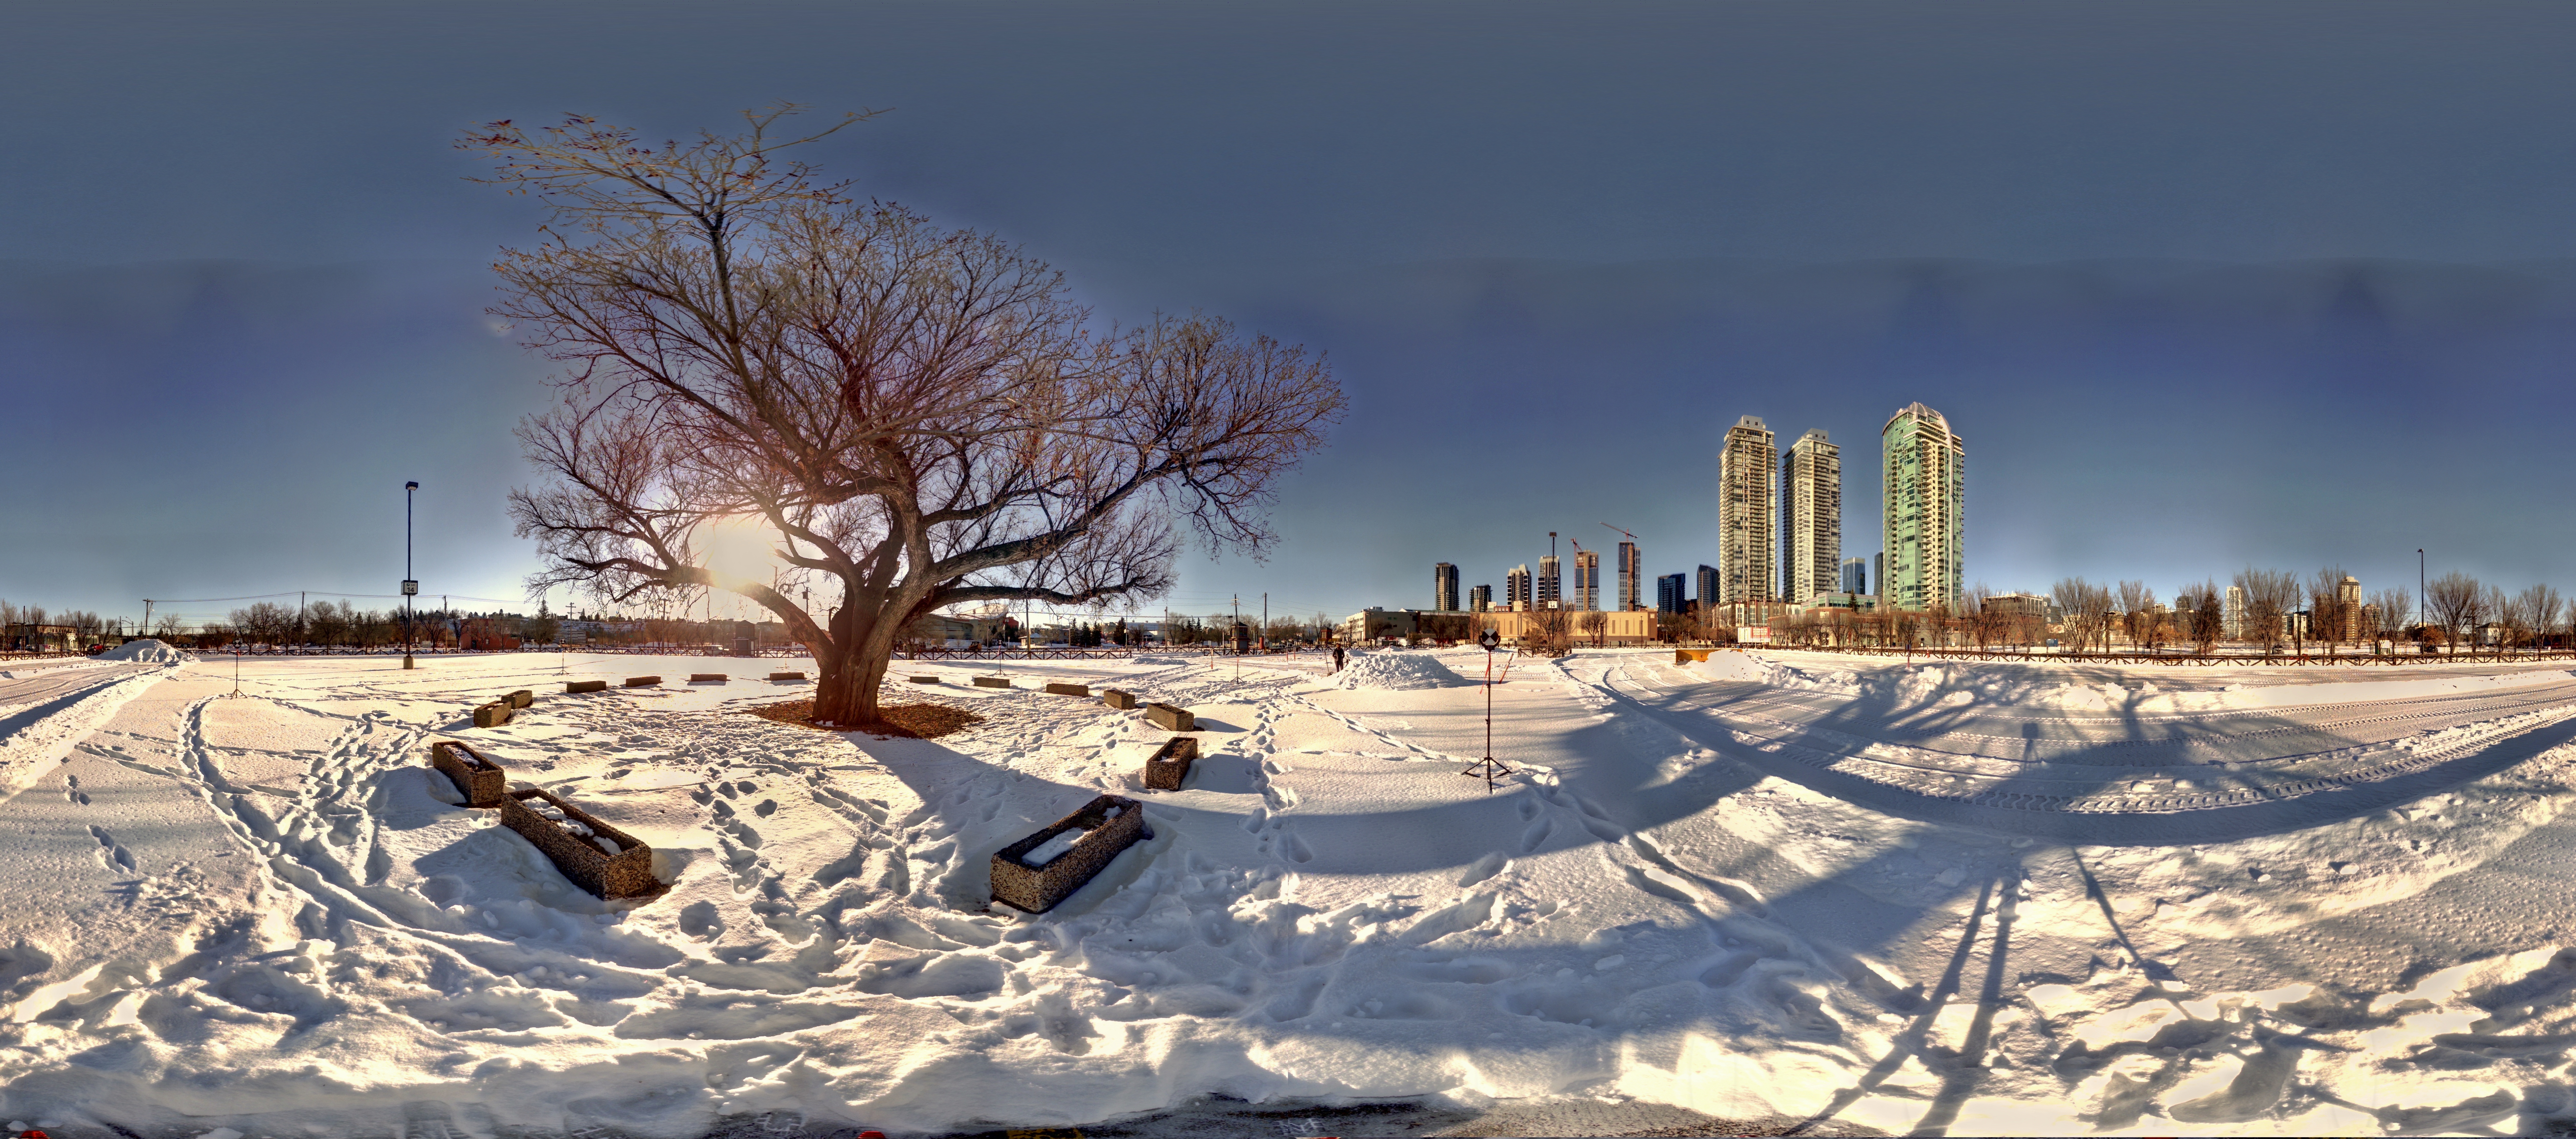 Panoramic view of the Stampede Elm and downtown Calgary from Z+F 5010X laser scanner, scanning location 2